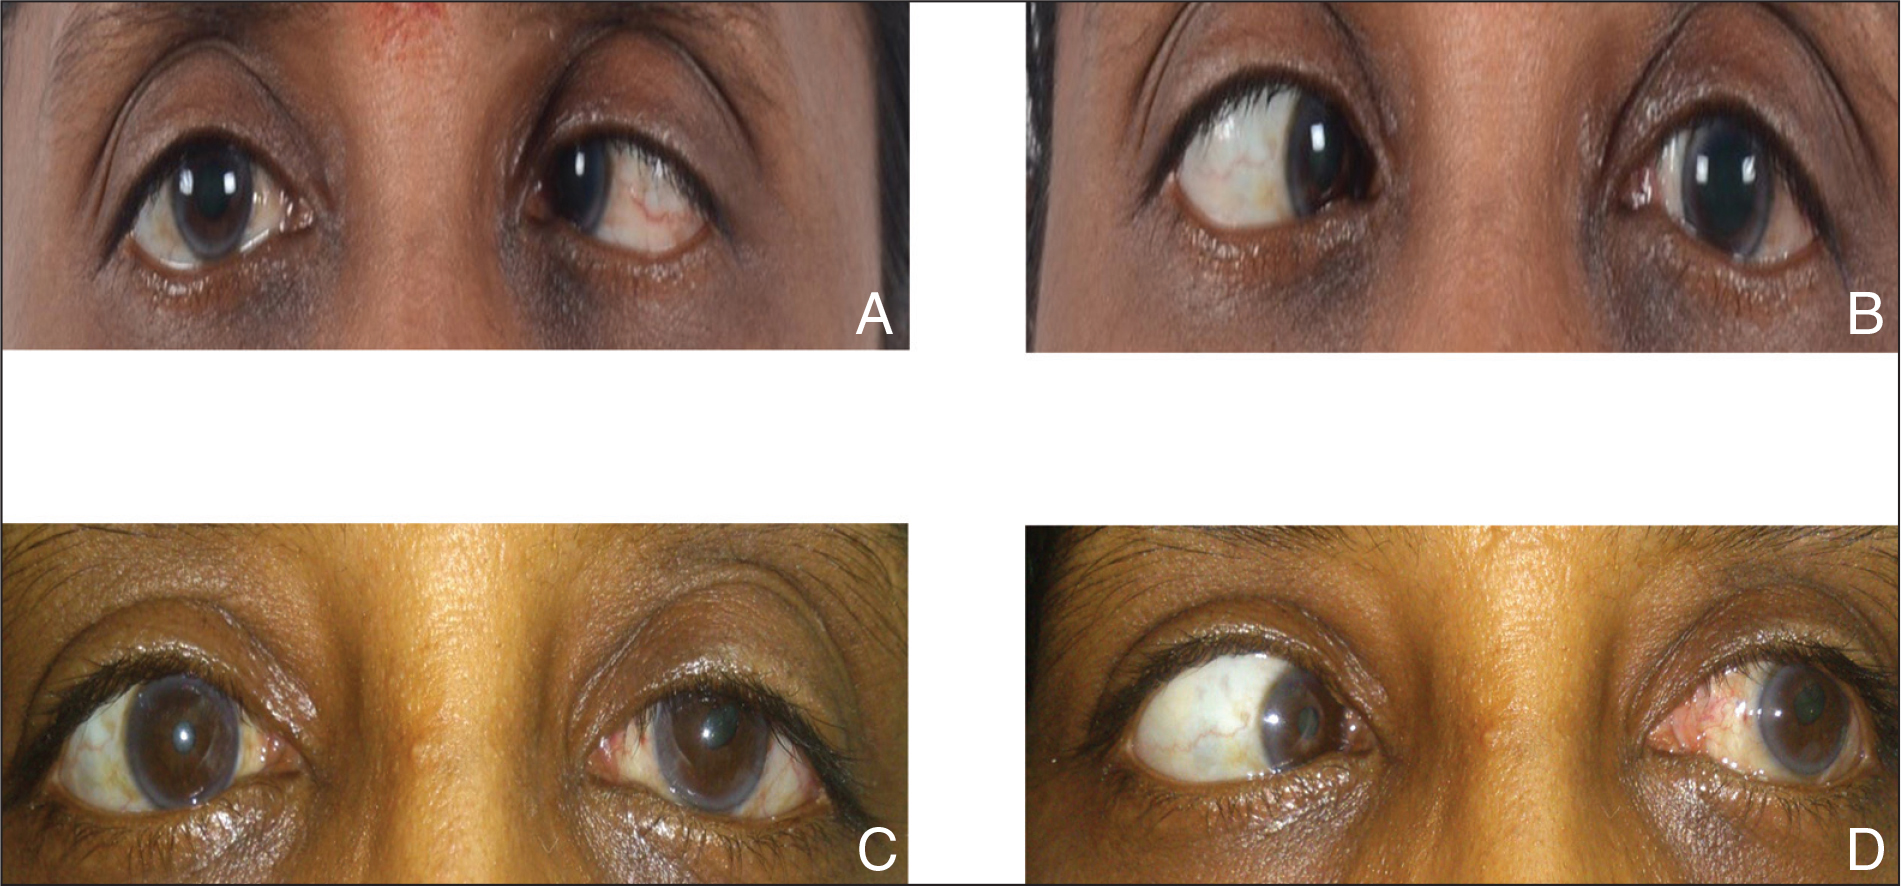 (A–B) Preoperative esotropia in primary position and grade 4 limitation of abduction in the left eye. (C–D) Postoperative improvement in primary gaze alignment and abduction in the left eye.